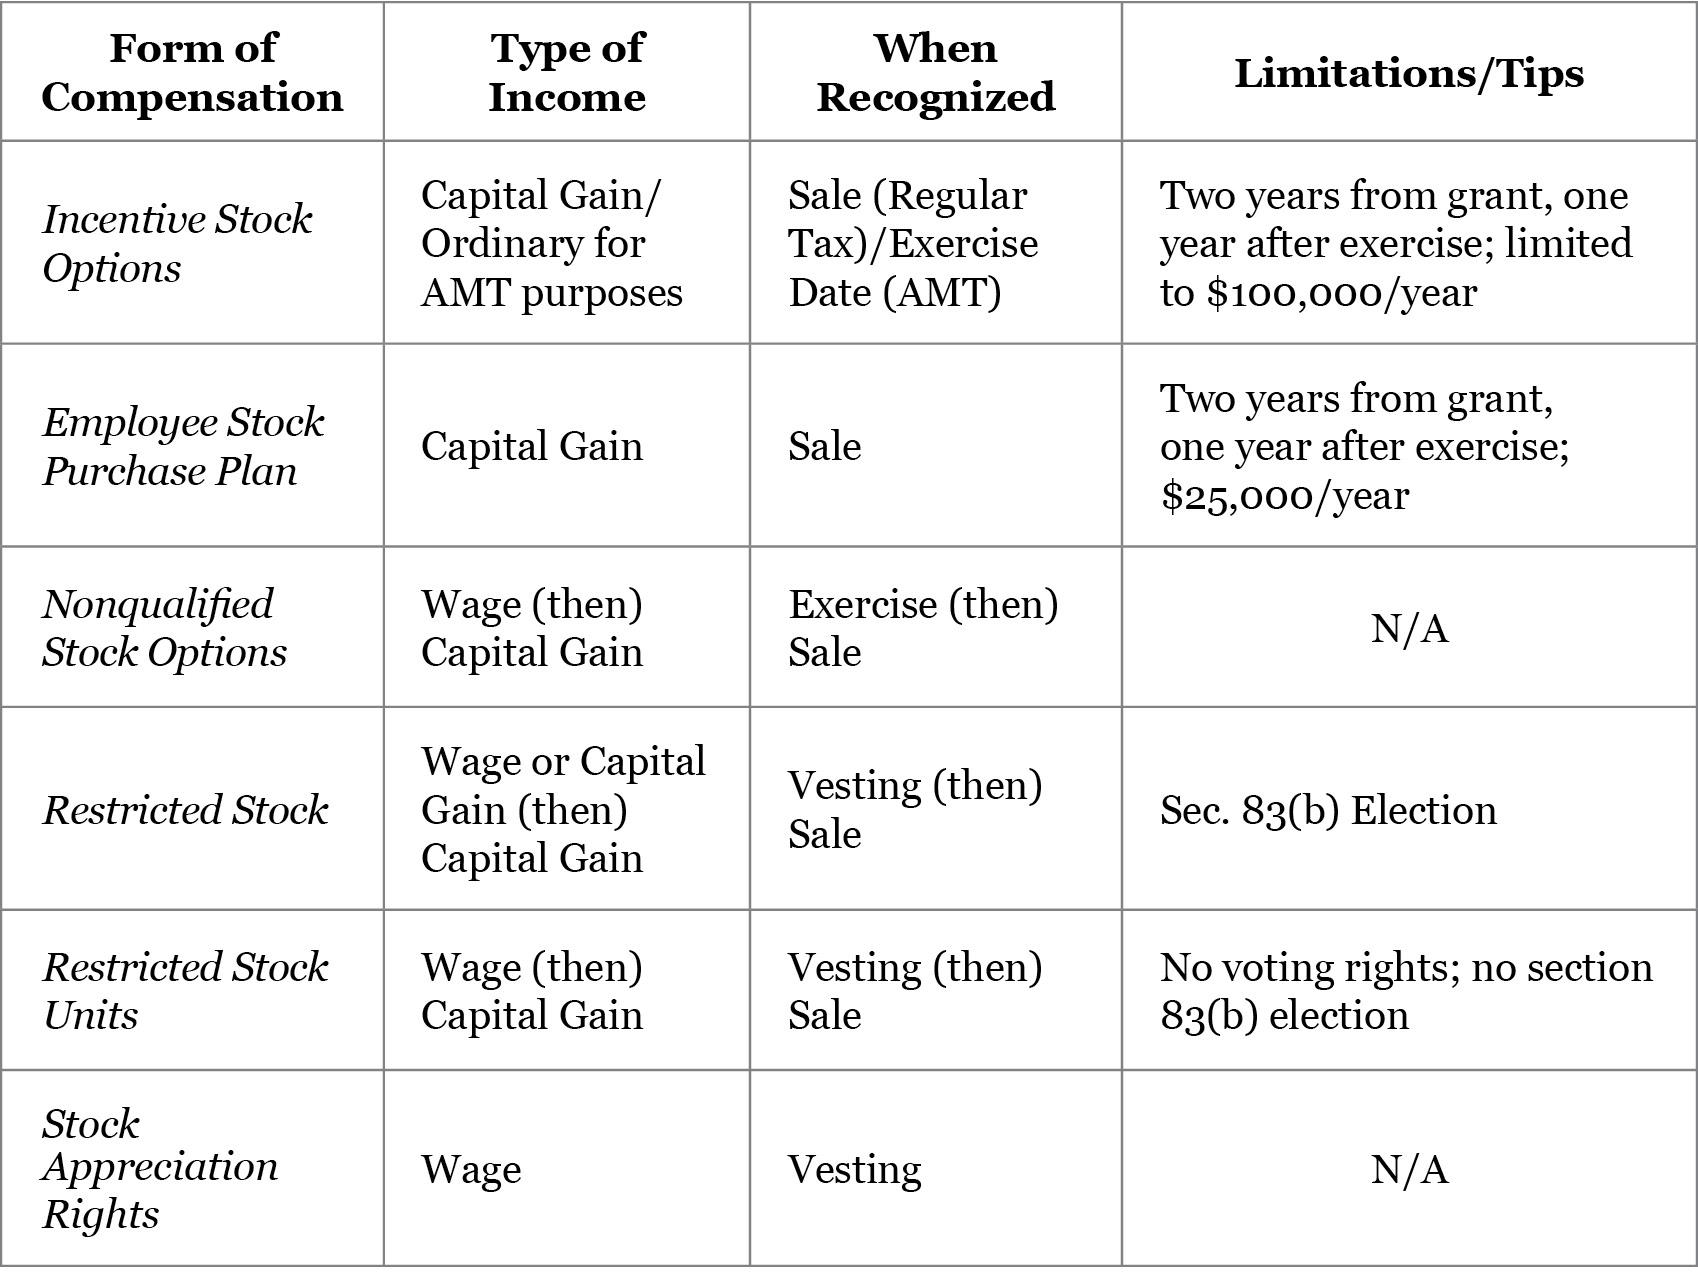 Tax implications for non qualified stock options